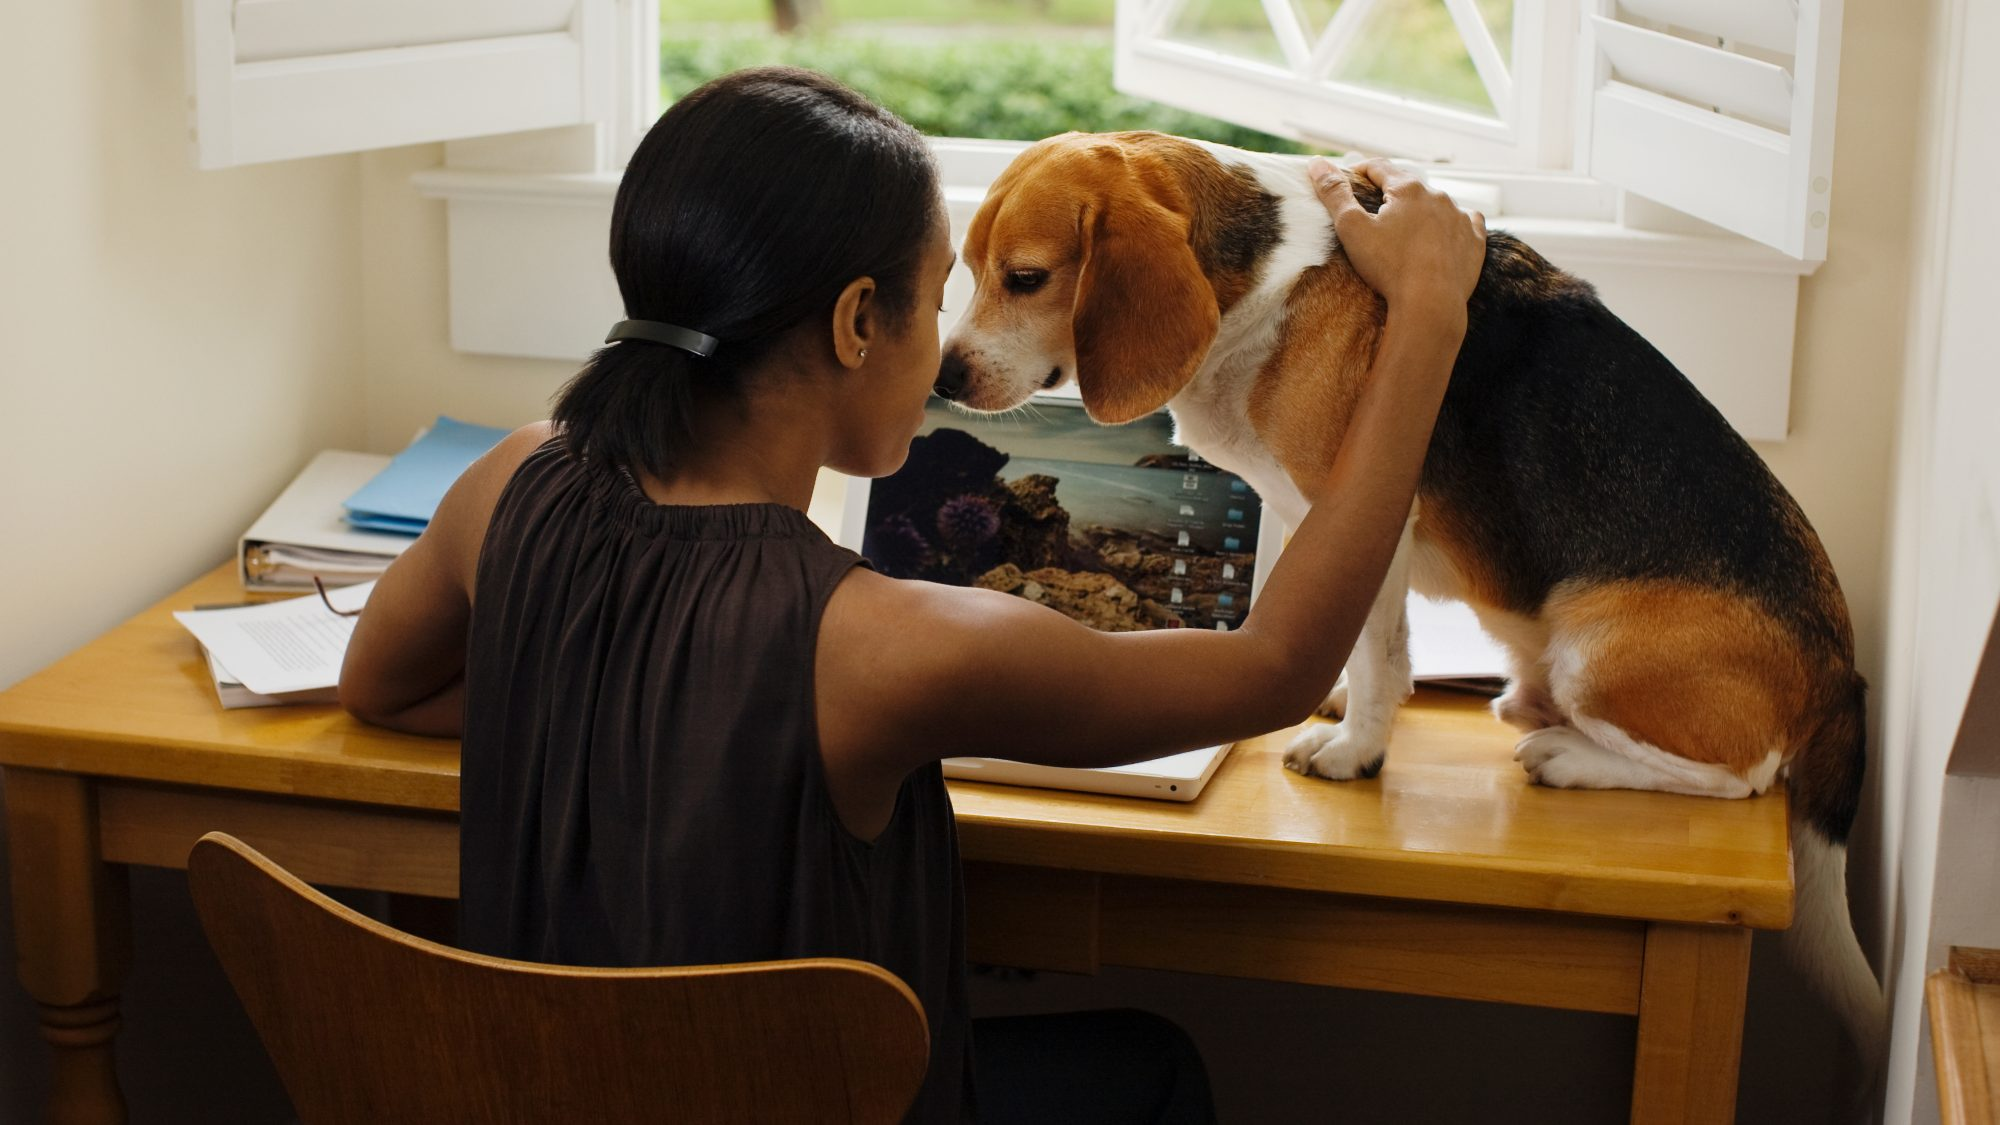 woman at desk with foster dog and laptop: how to volunteer from home